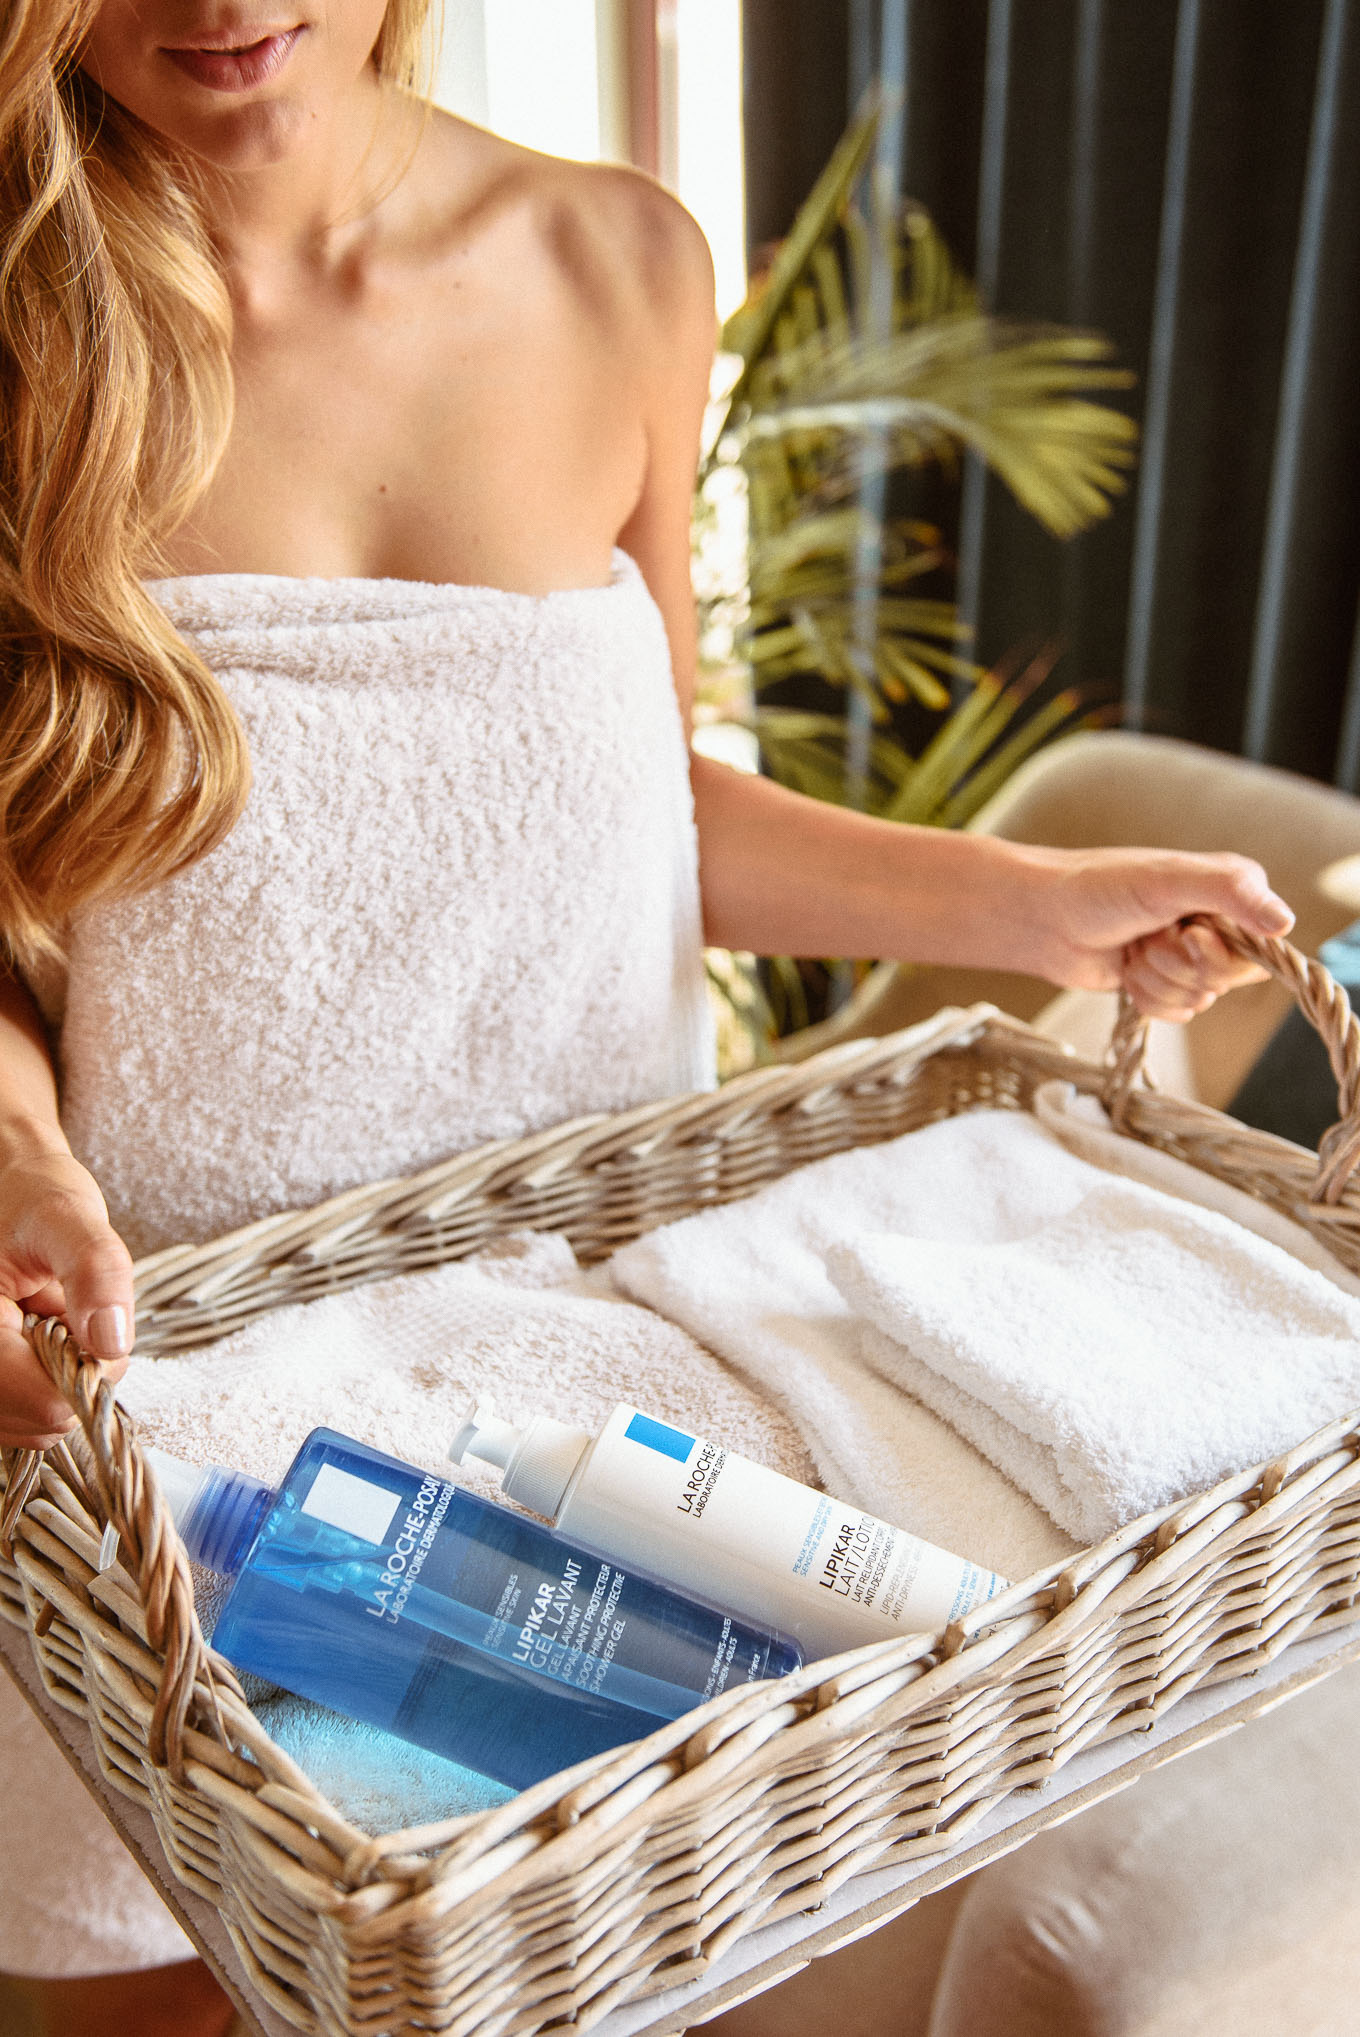 Bodycare from La Roche-posay body lotion